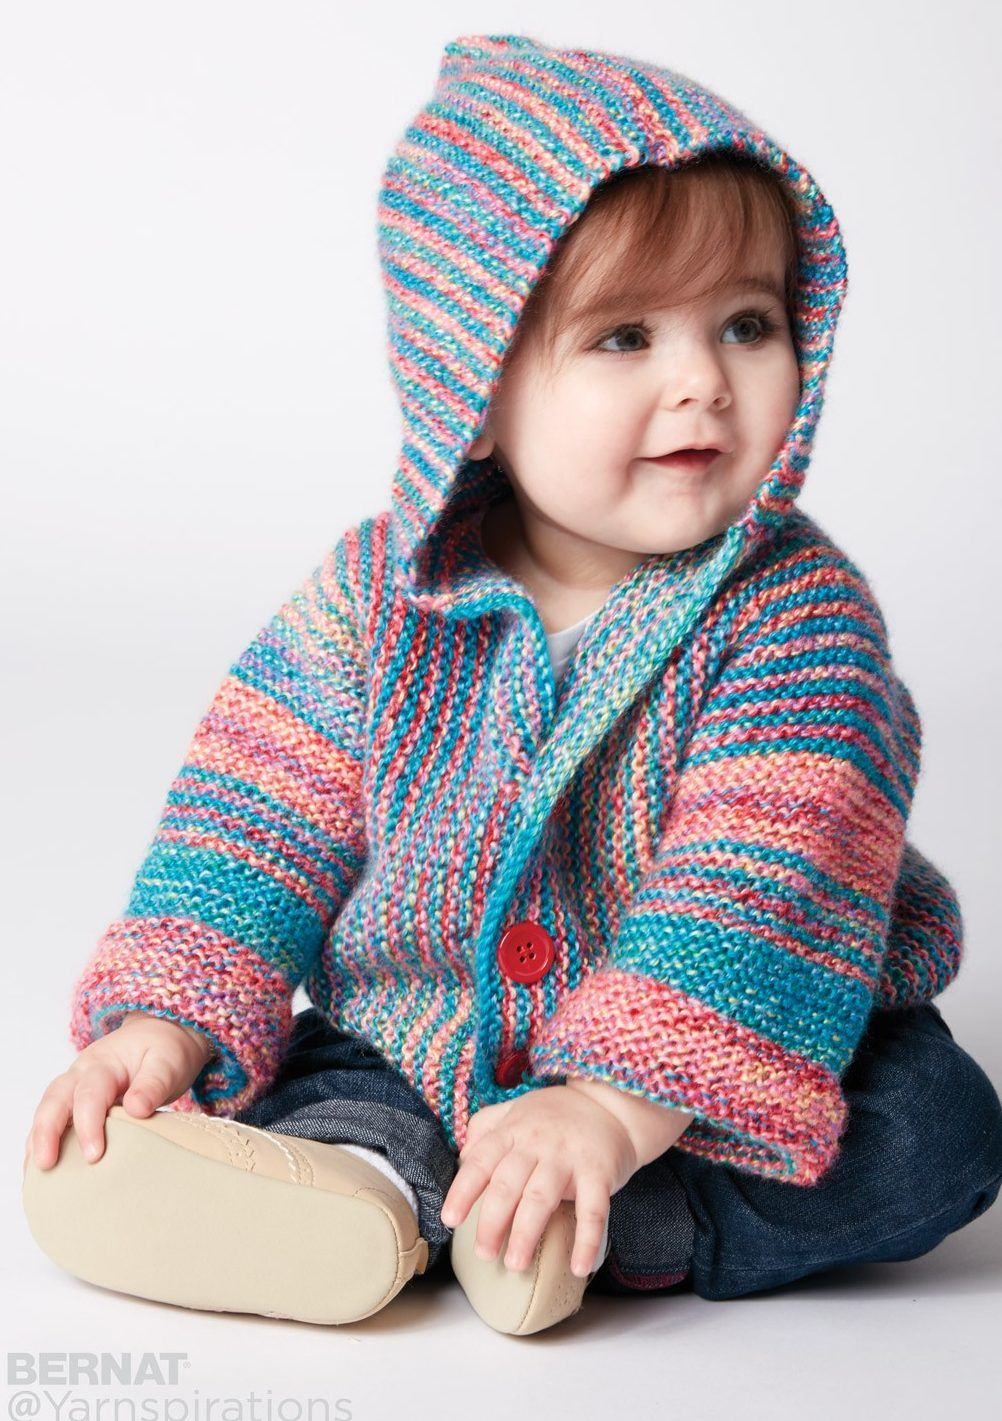 8b155f7fae8d Free Knitting Pattern for Show Your Stripes Baby Jacket - This easy ...